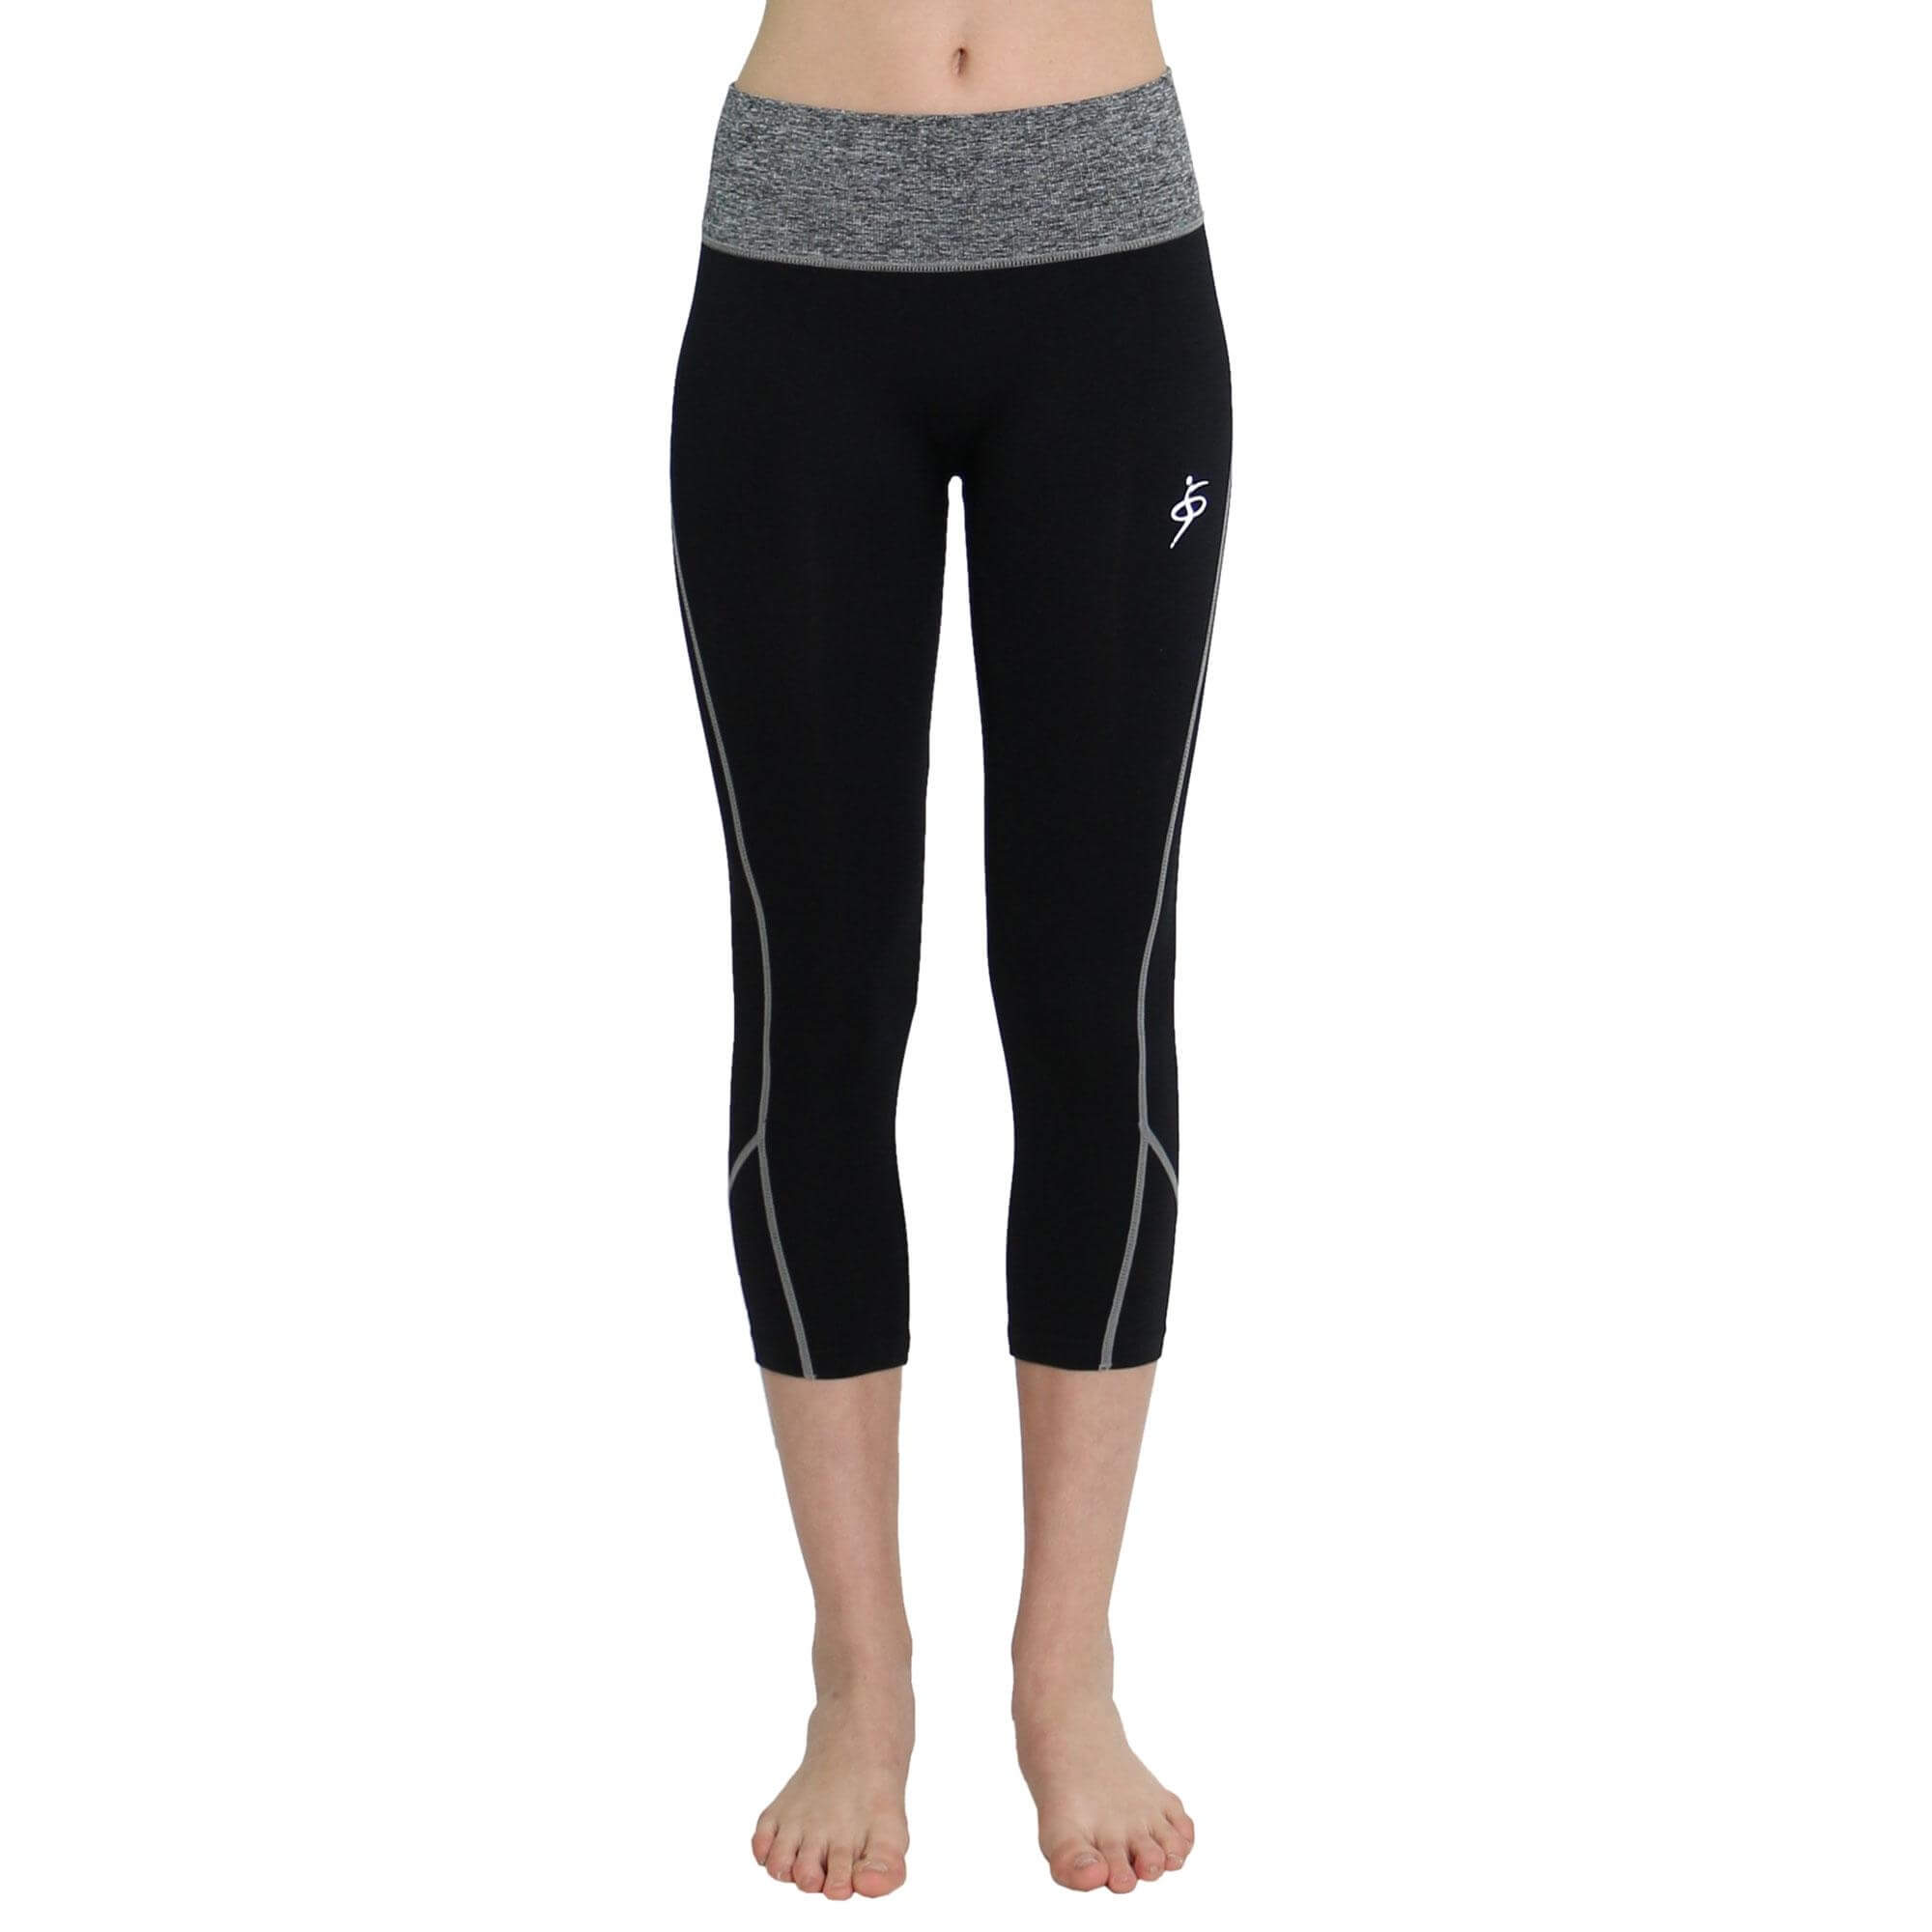 O to S Amazing Sports Racing Stripe Crop Pant